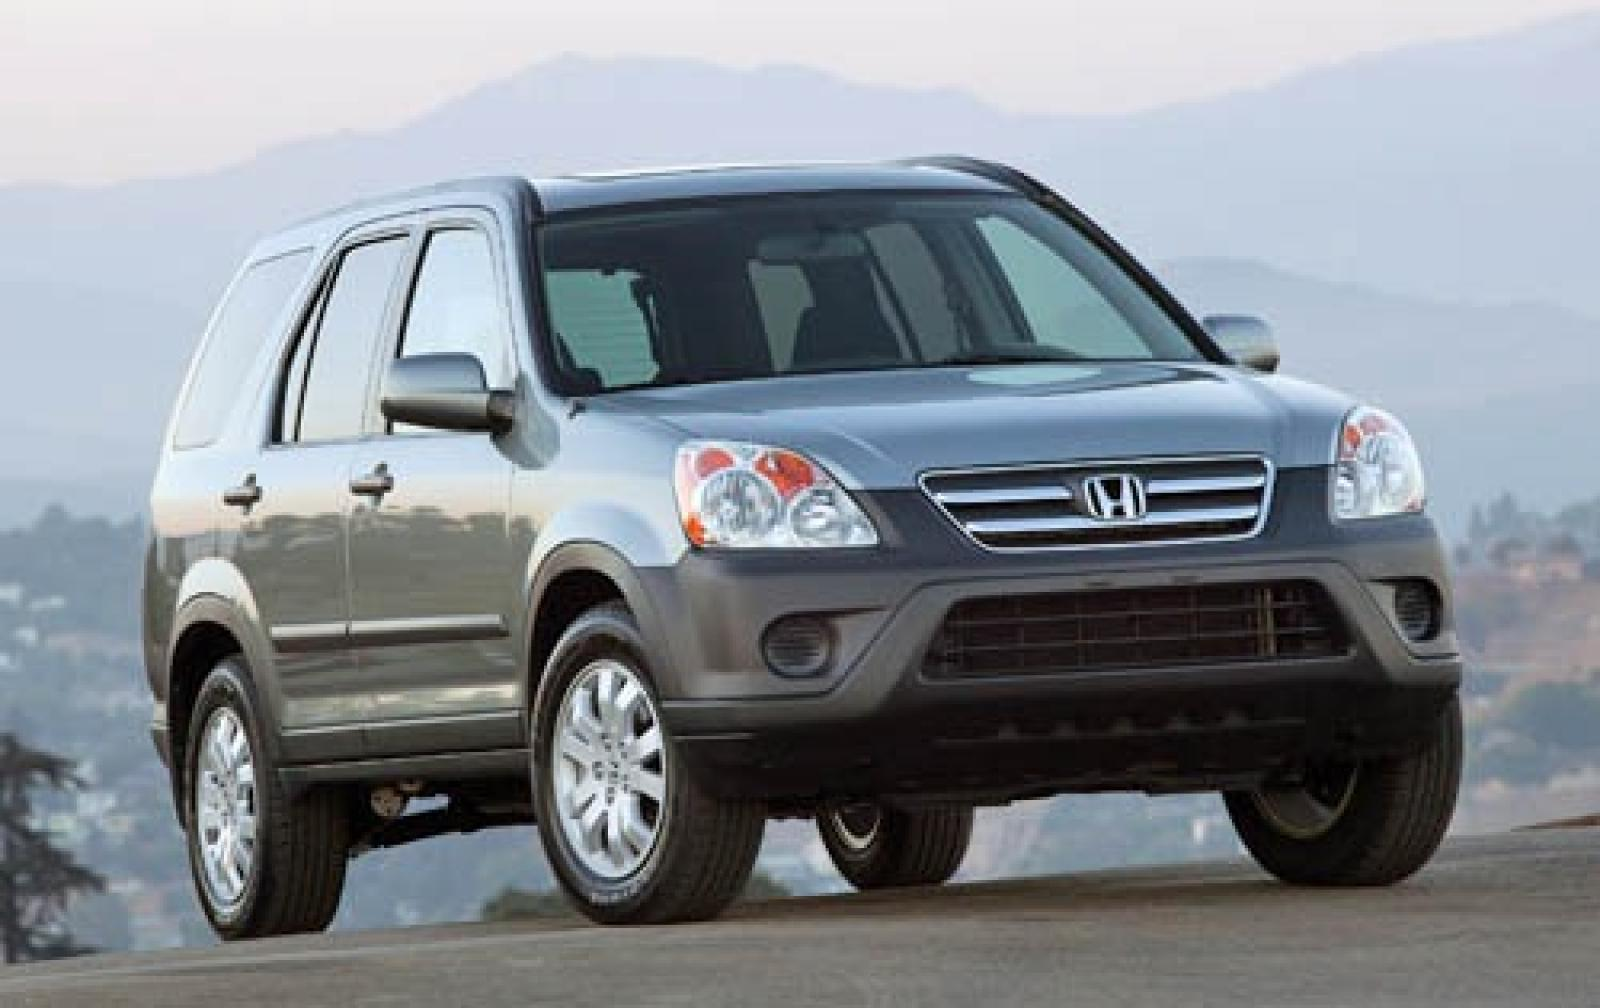 2006 honda cr v information and photos zombiedrive for Where is the honda cr v built